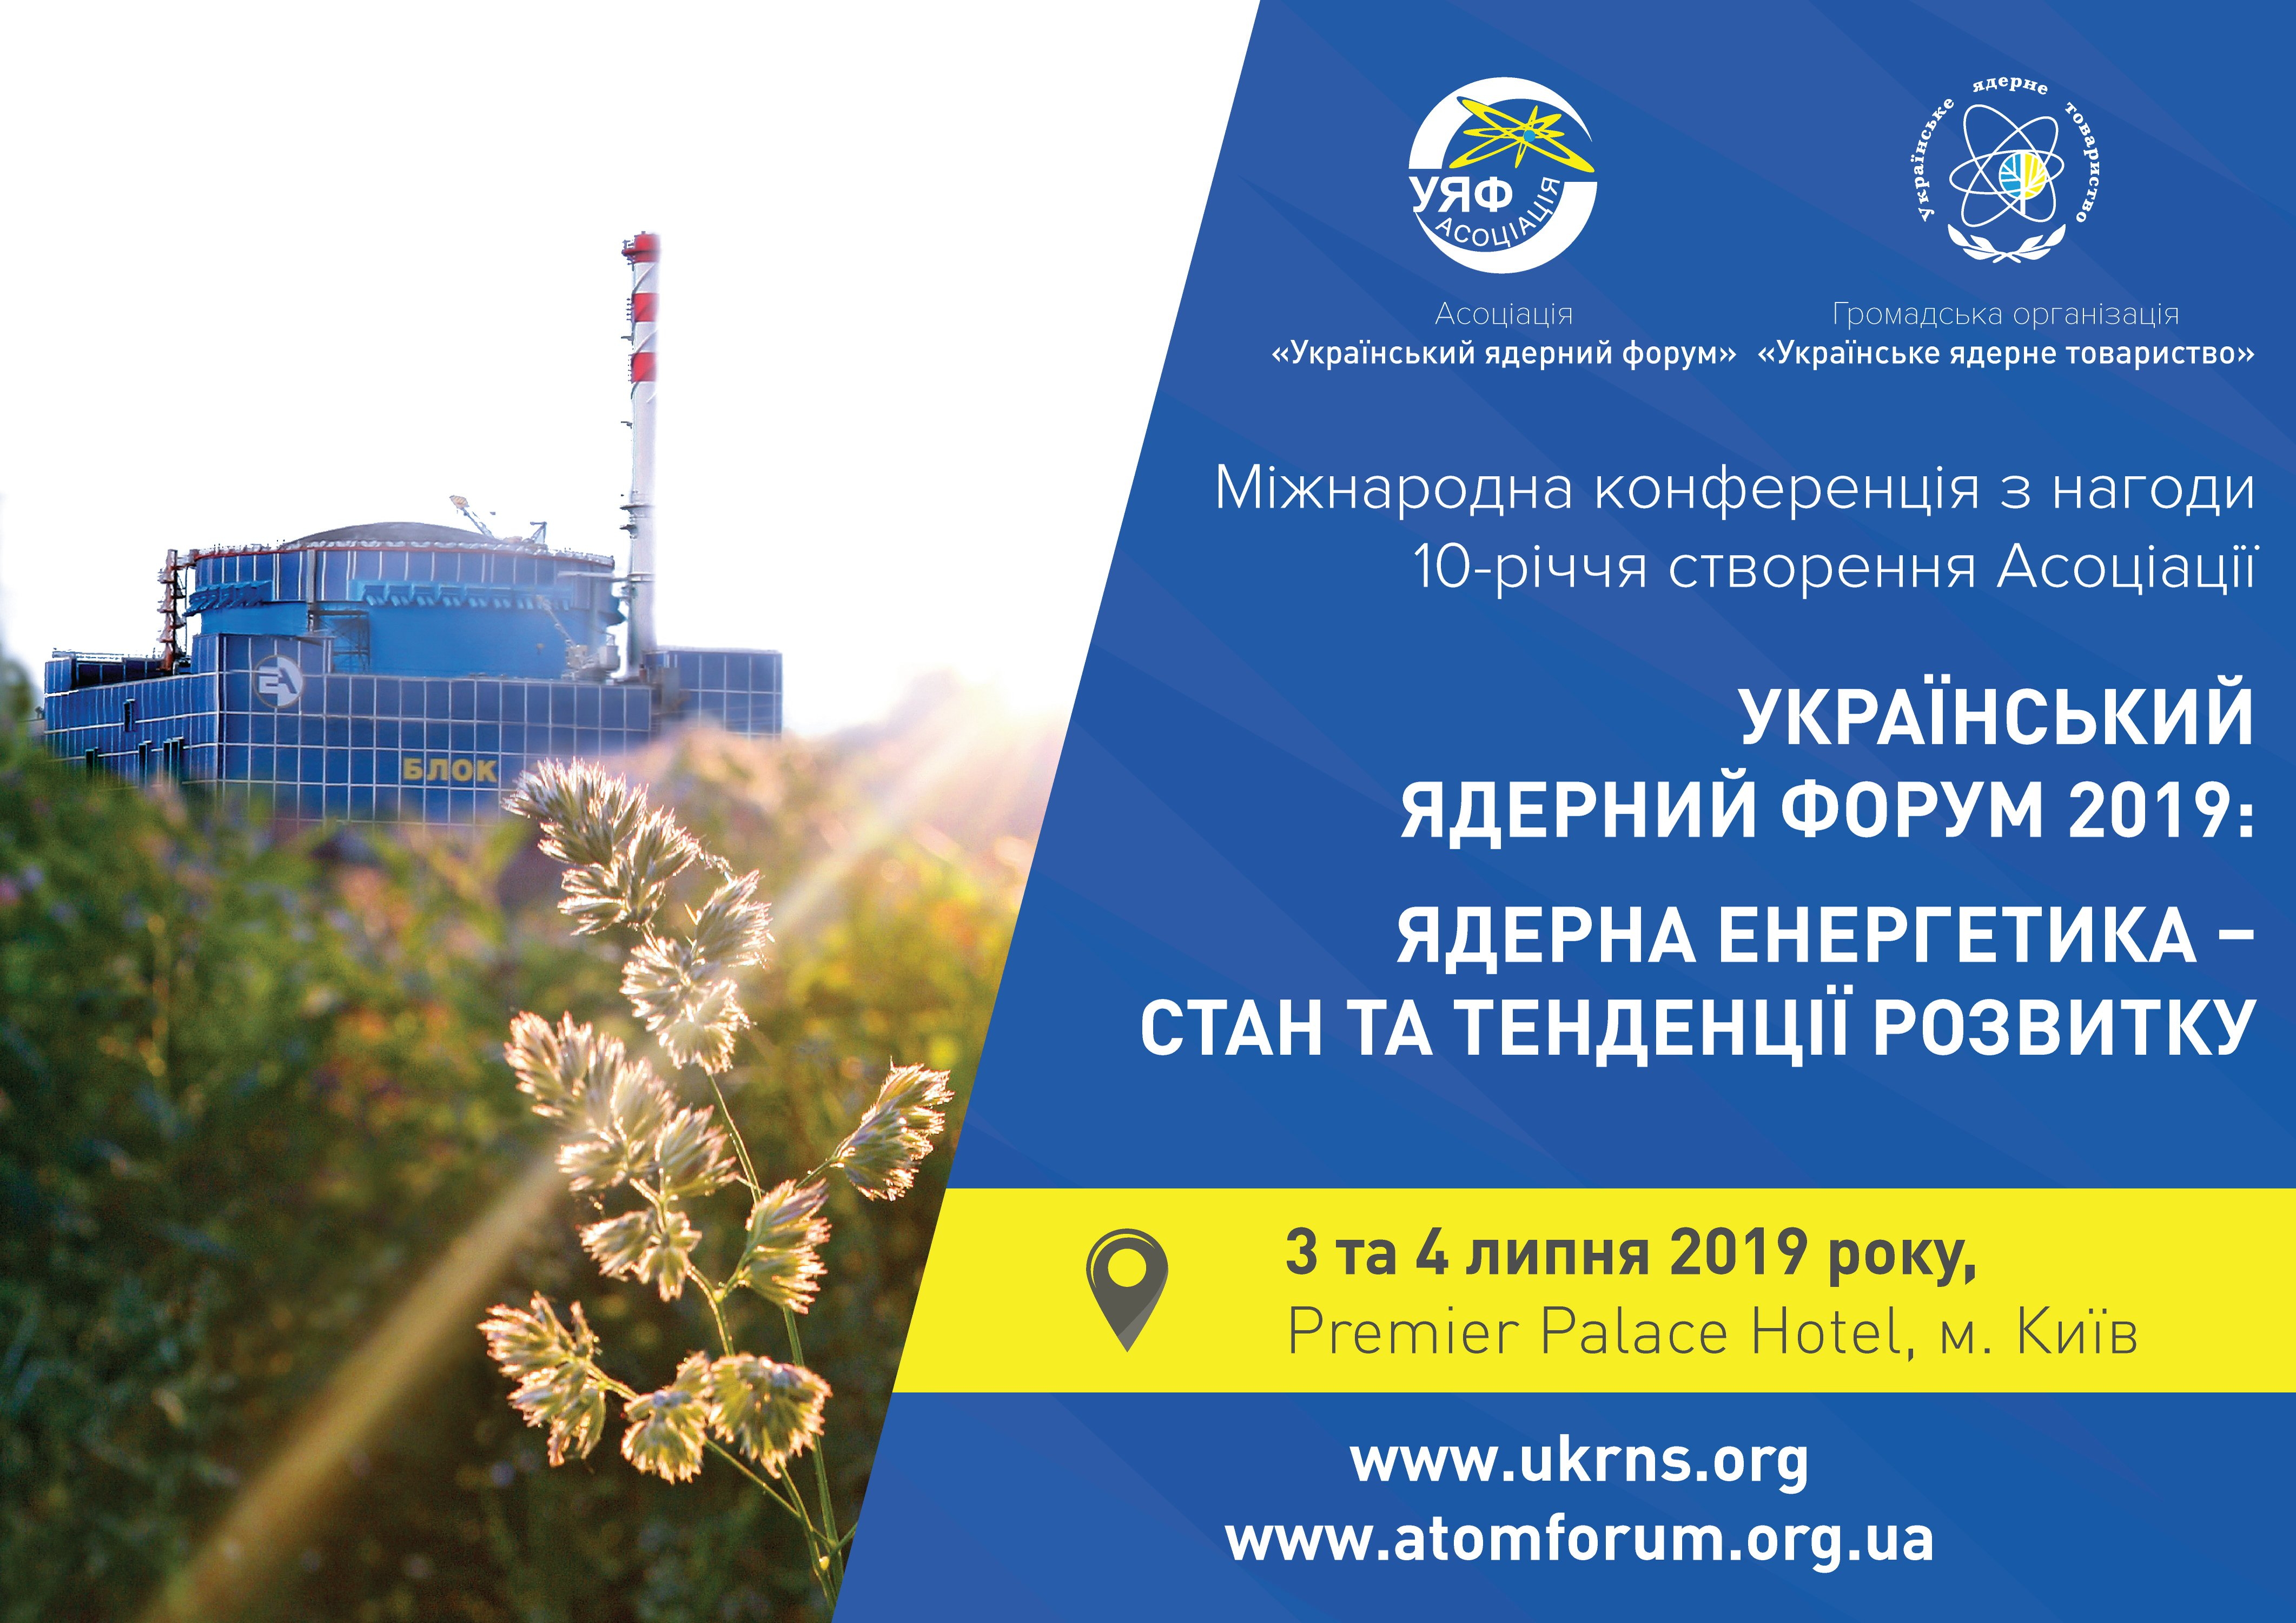 The nuclear energy industry is a guarantor of sustainable economic and social development